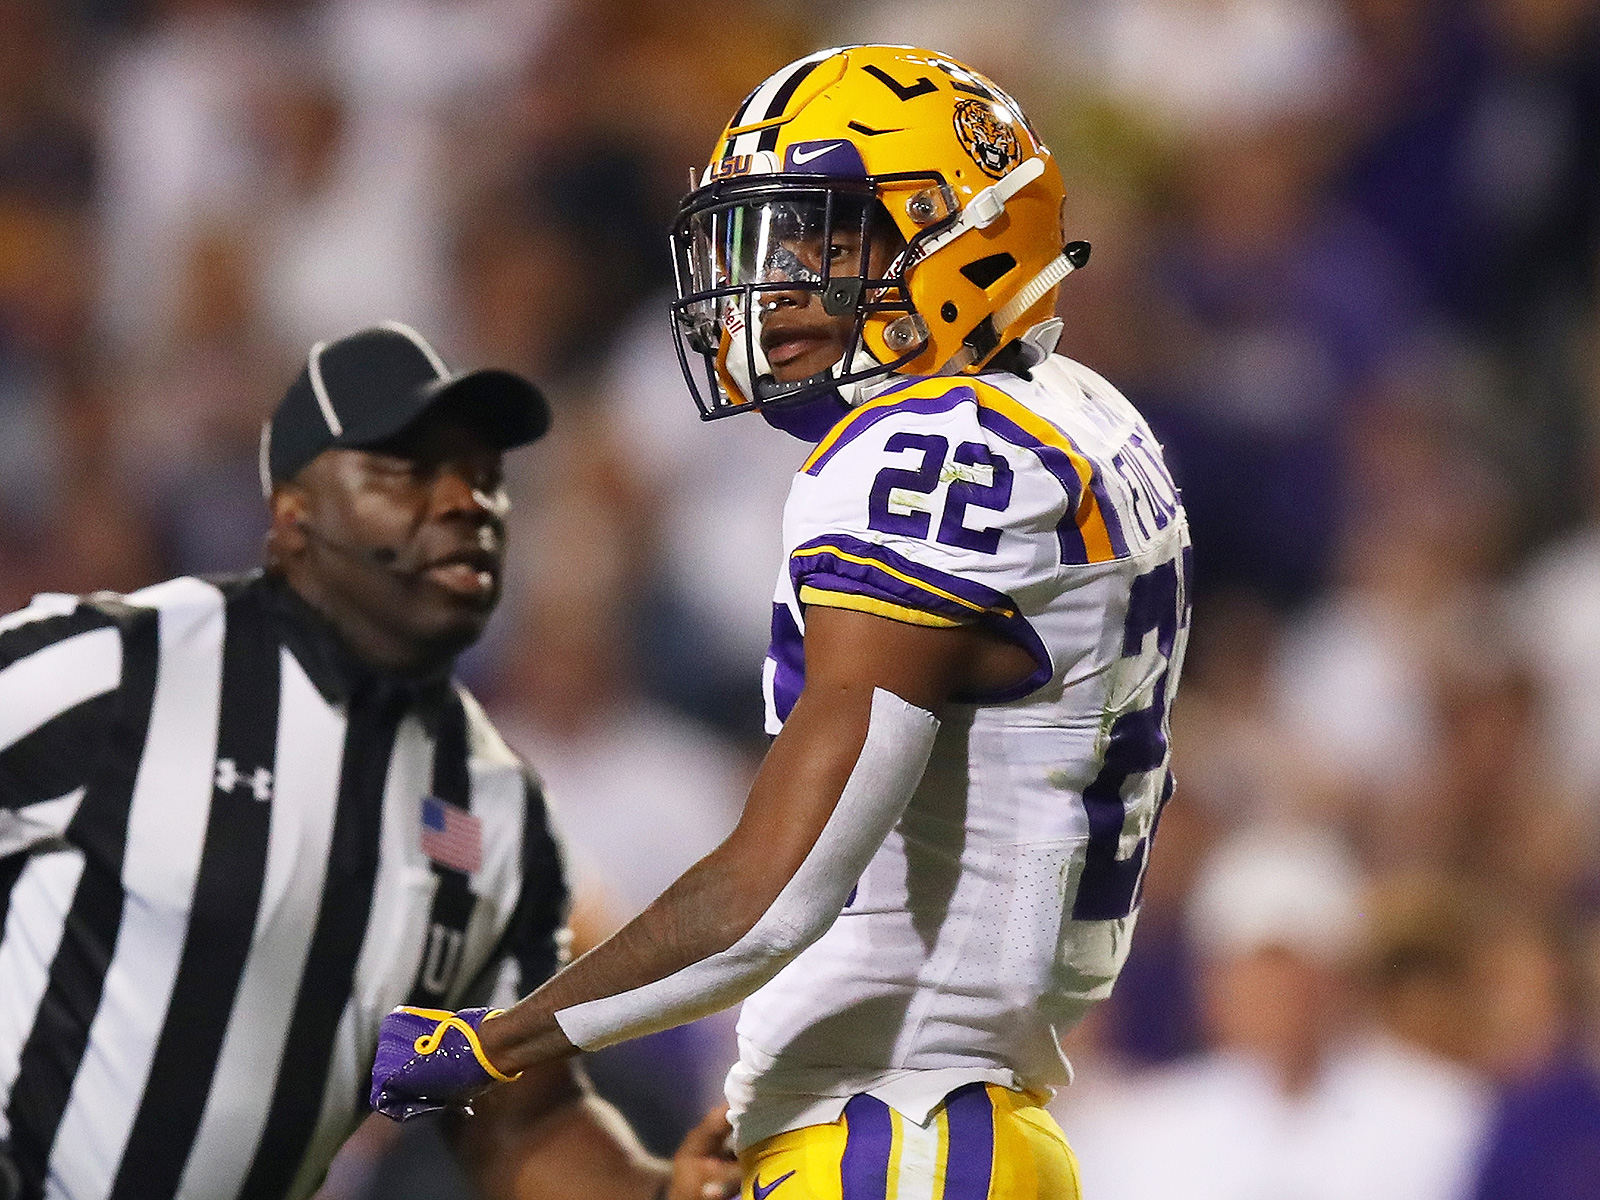 College football best players top 100 LSU Kristian Fulton